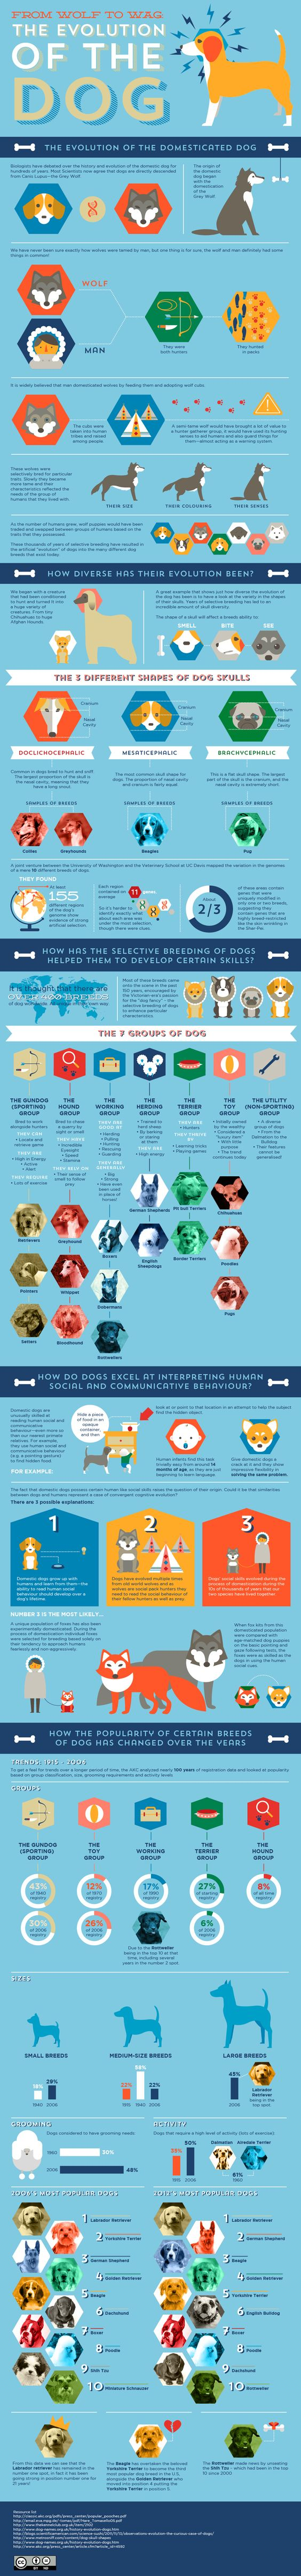 Infographic: Dog Evolution